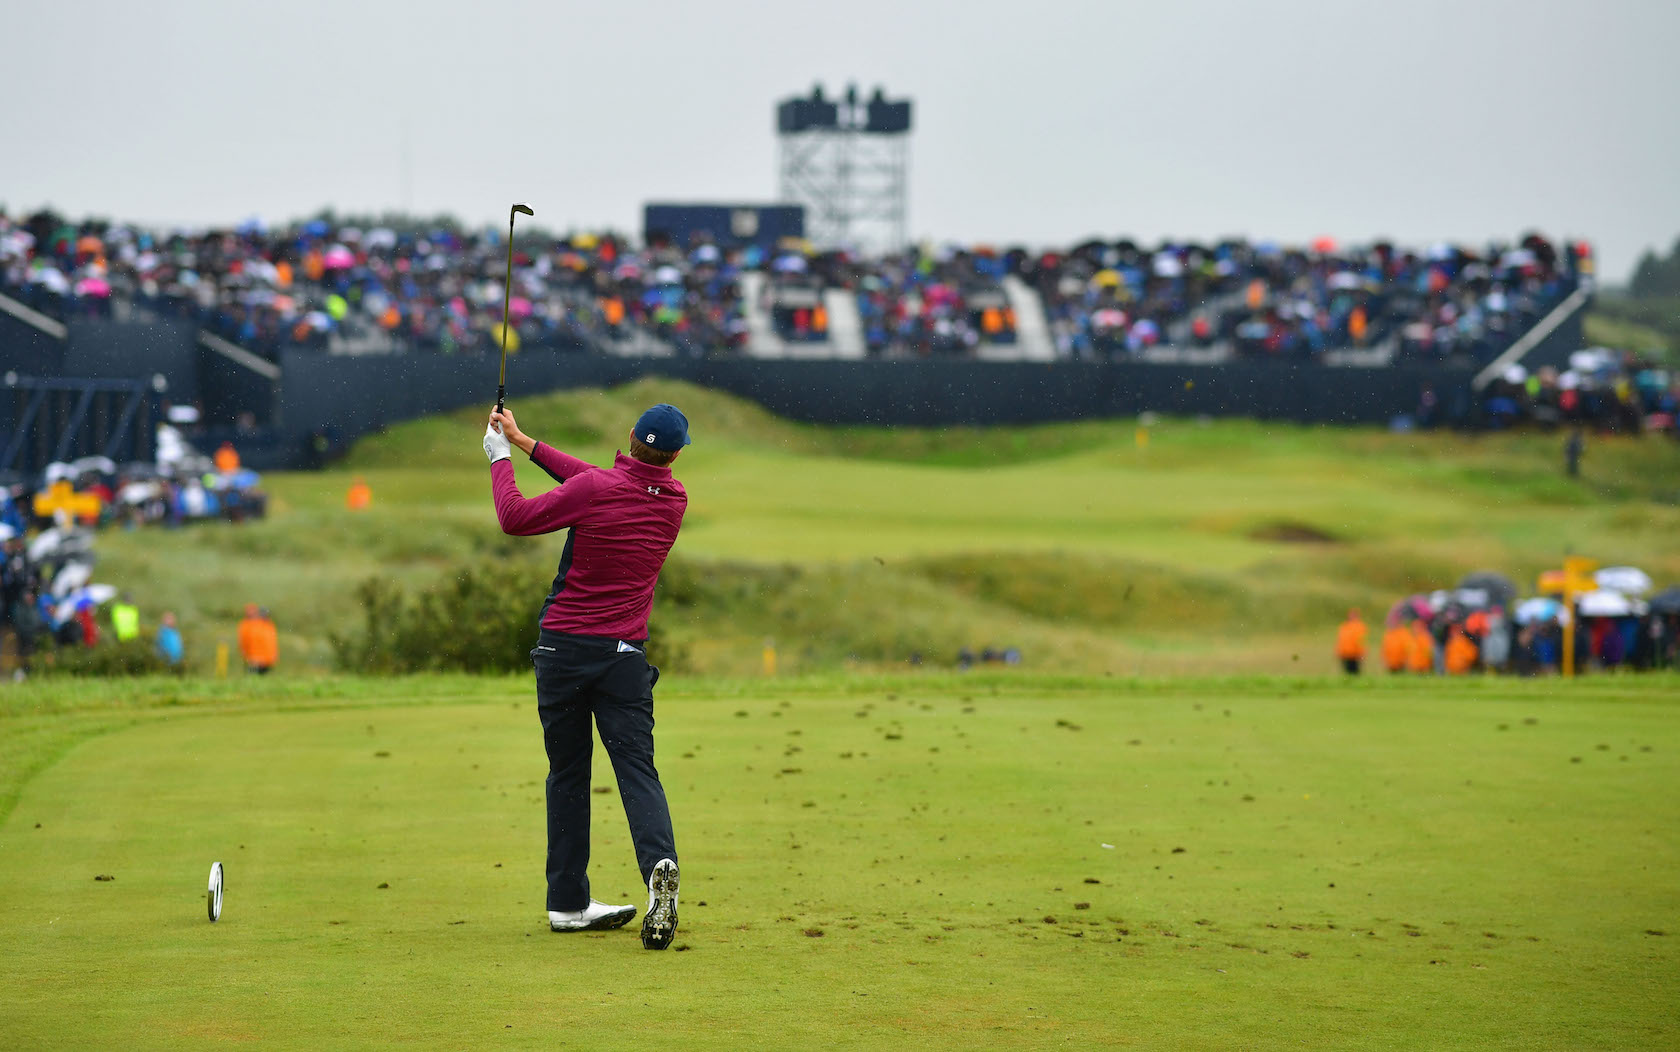 2017 Open Championship: Round 2 - 14th Hole Tee Shot